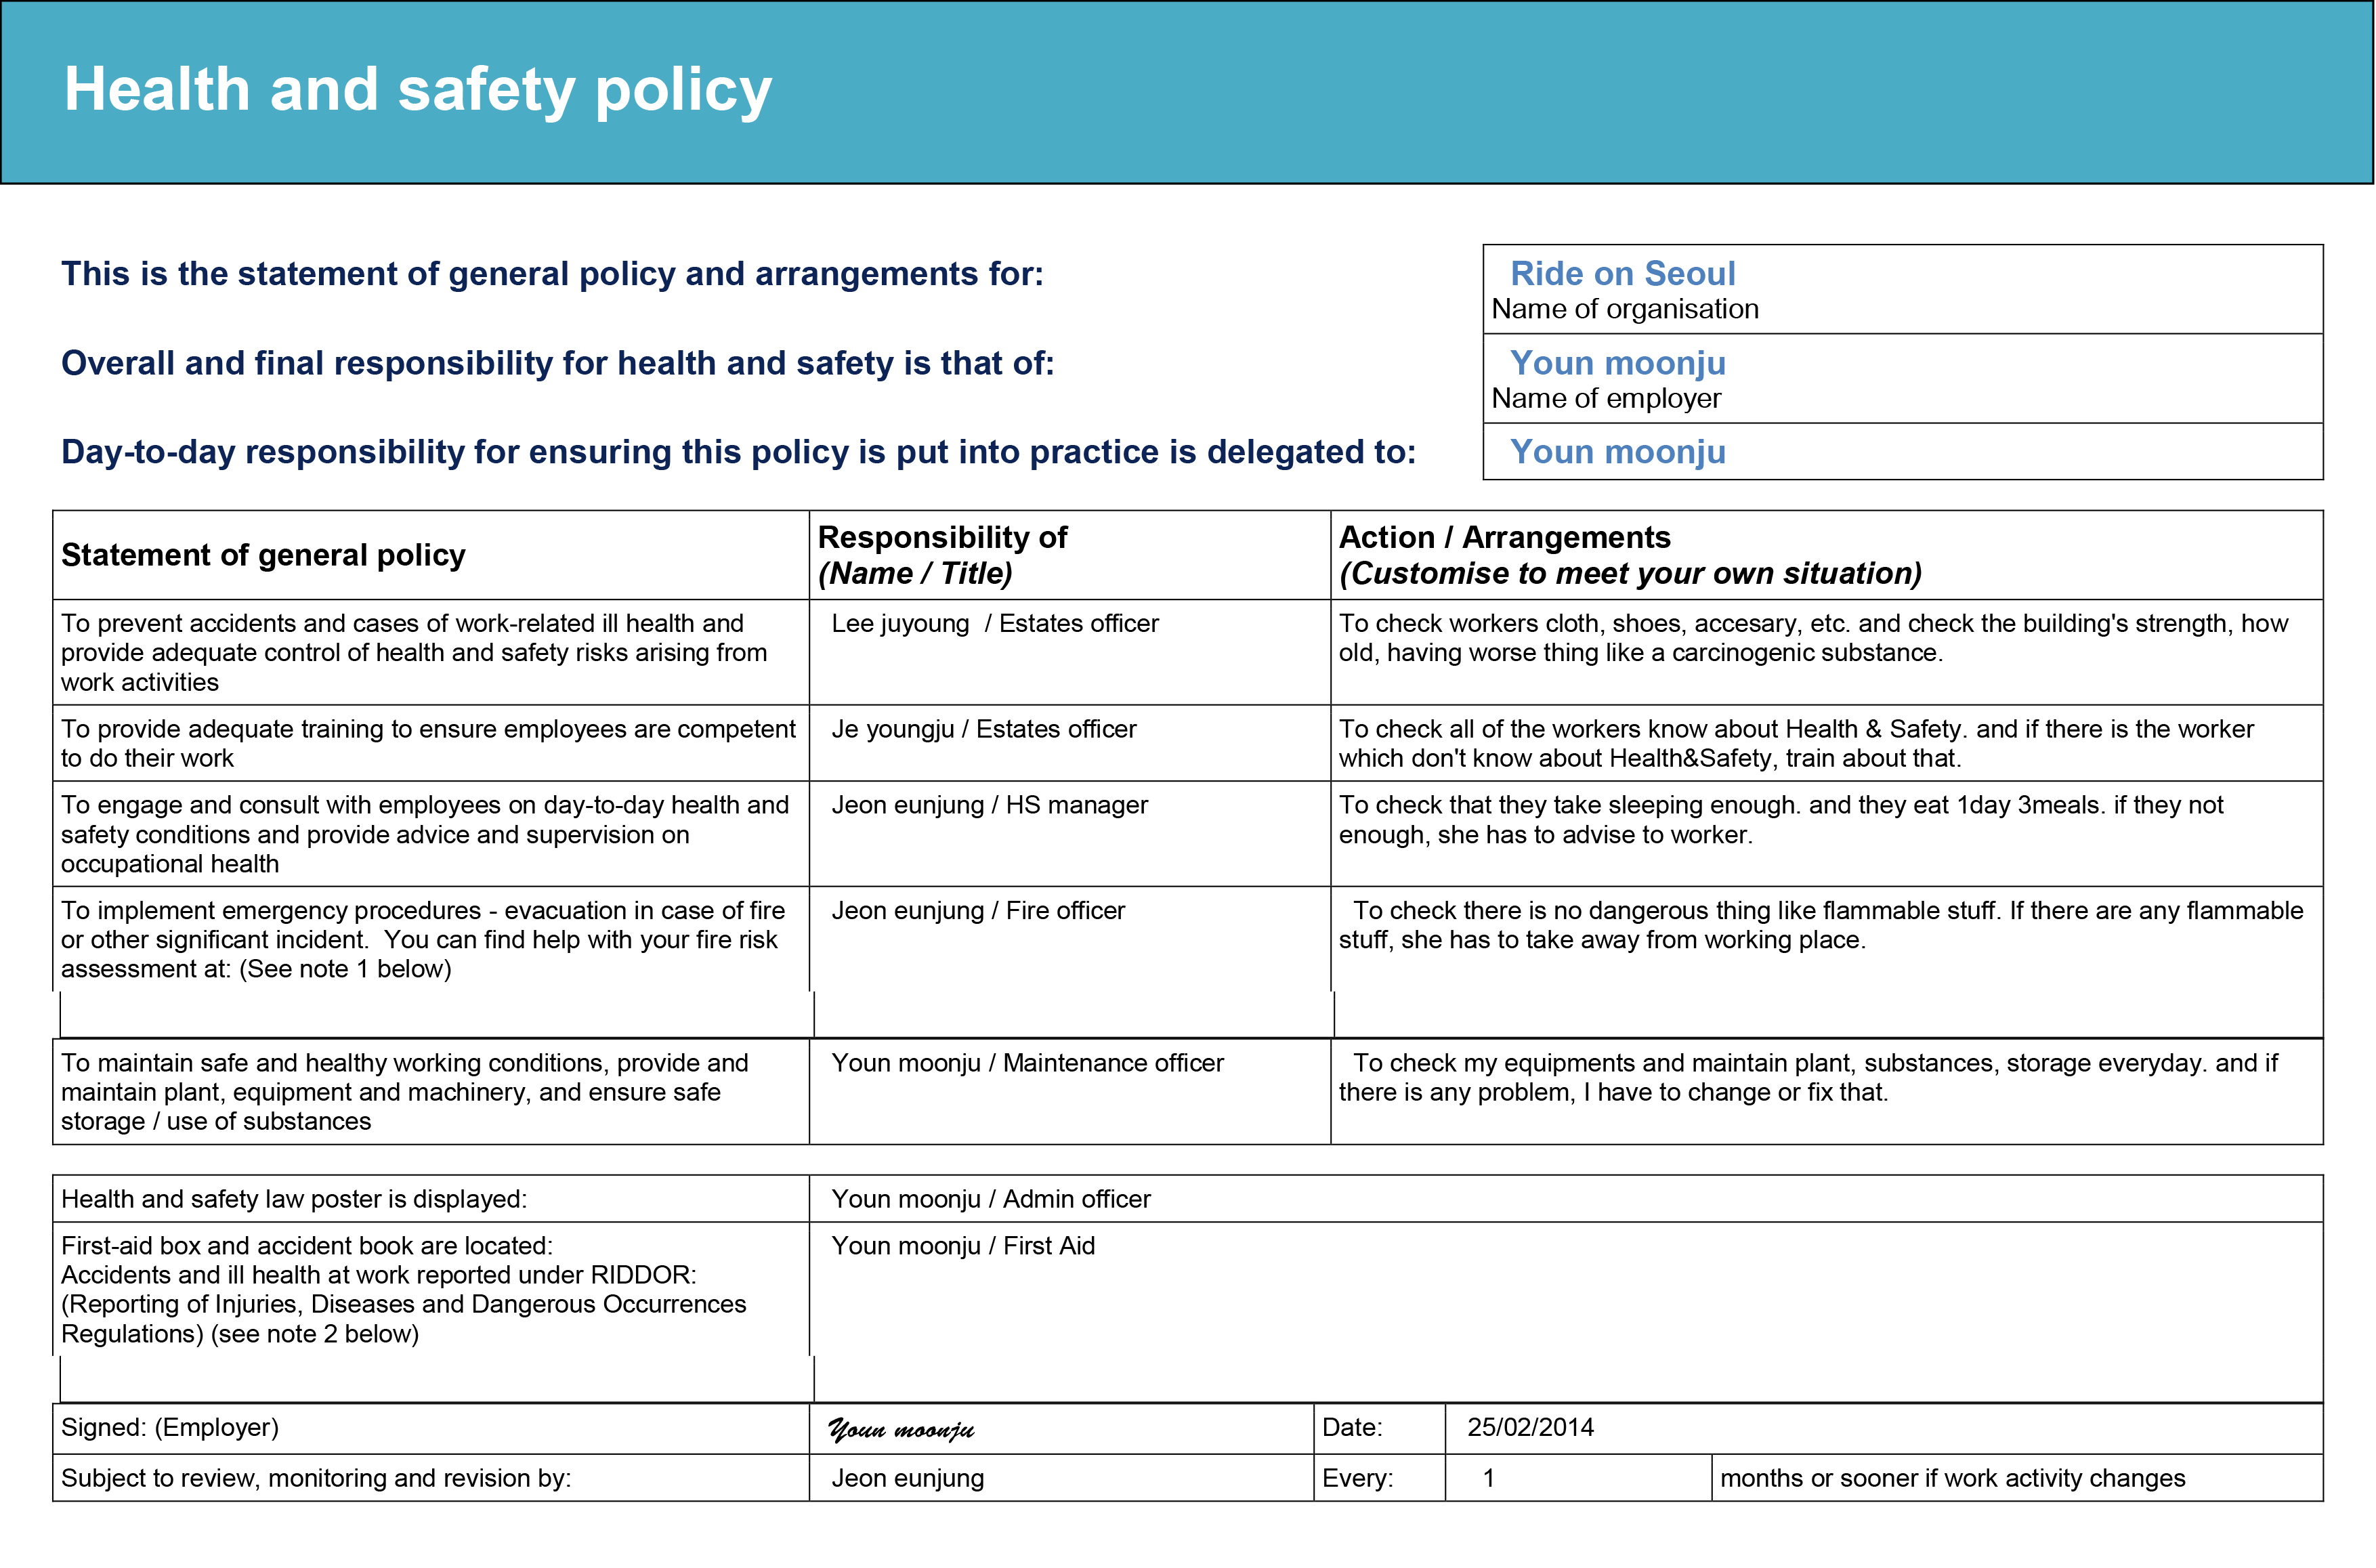 Hse Health And Safety Policy Template 2 6 Health And Safety Implications 2014 Joy Youn